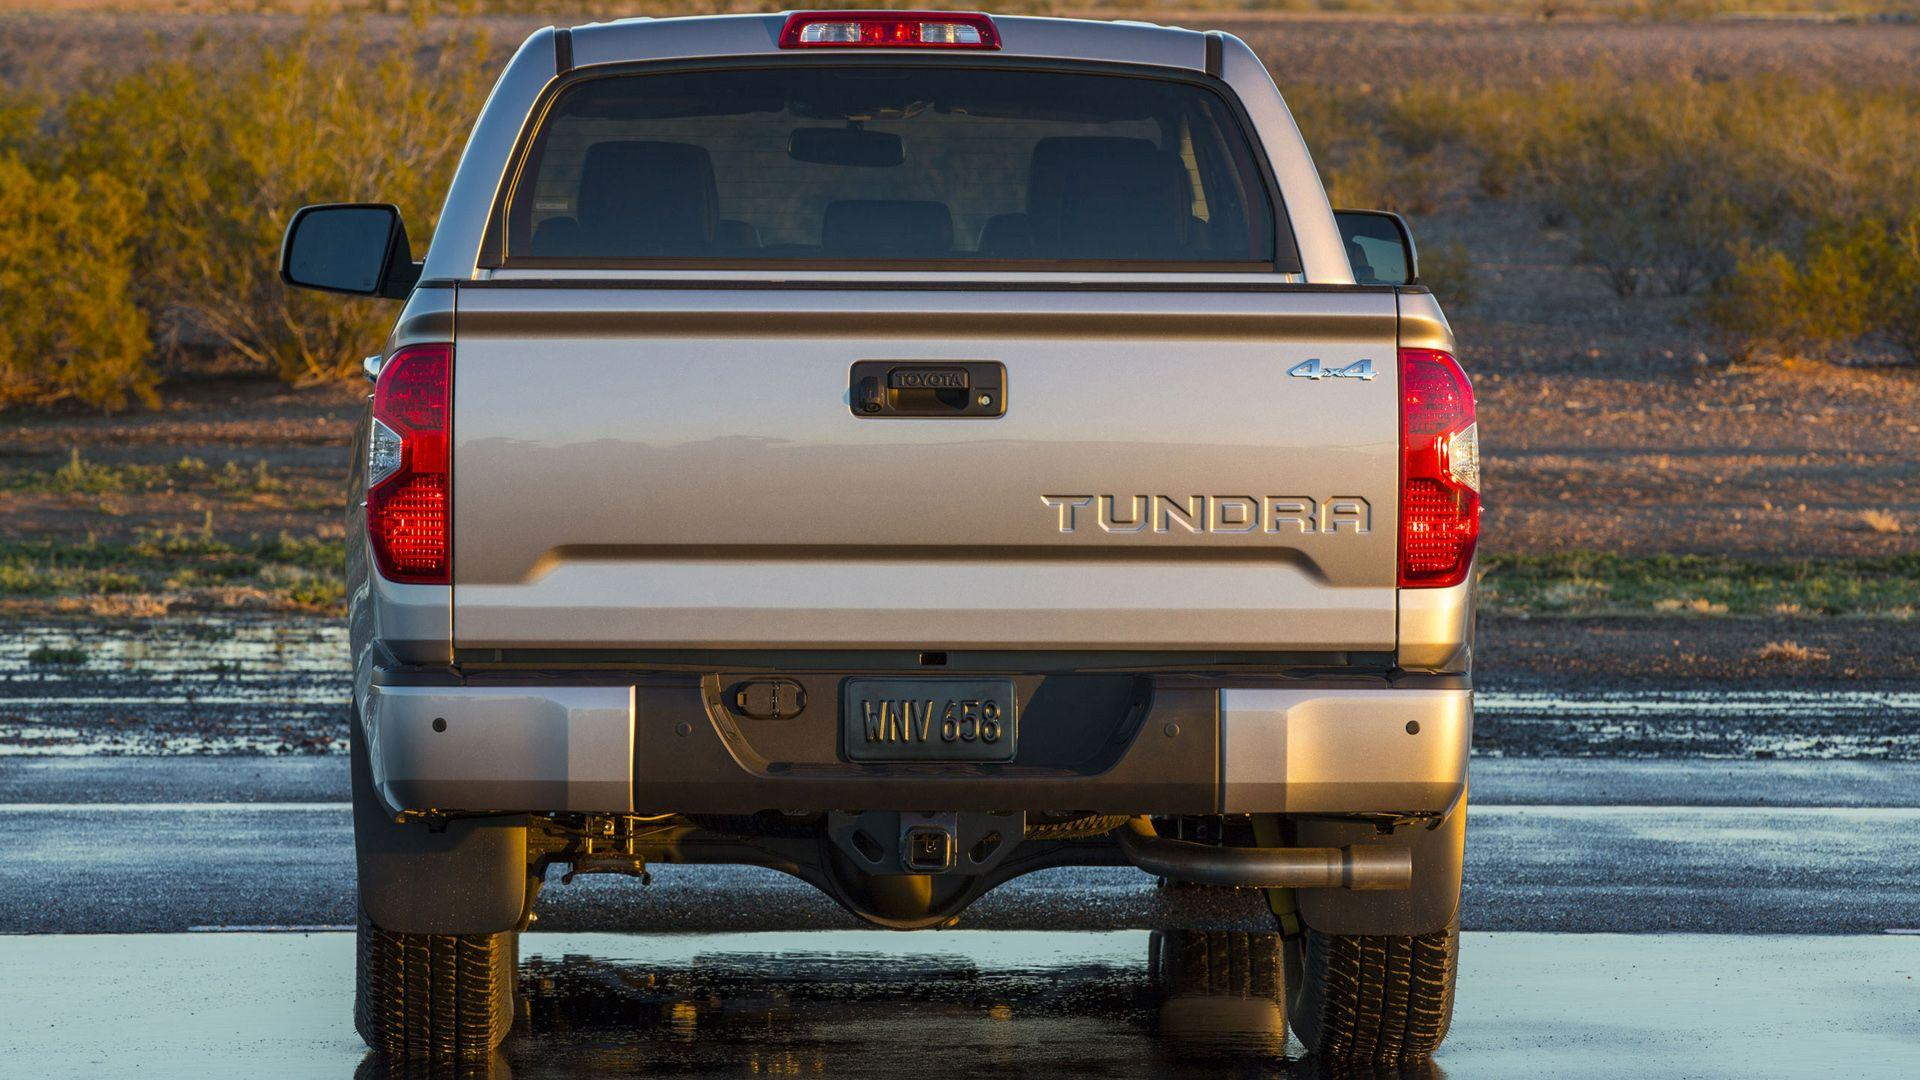 Toyota Tundra 2014 Wallpapers